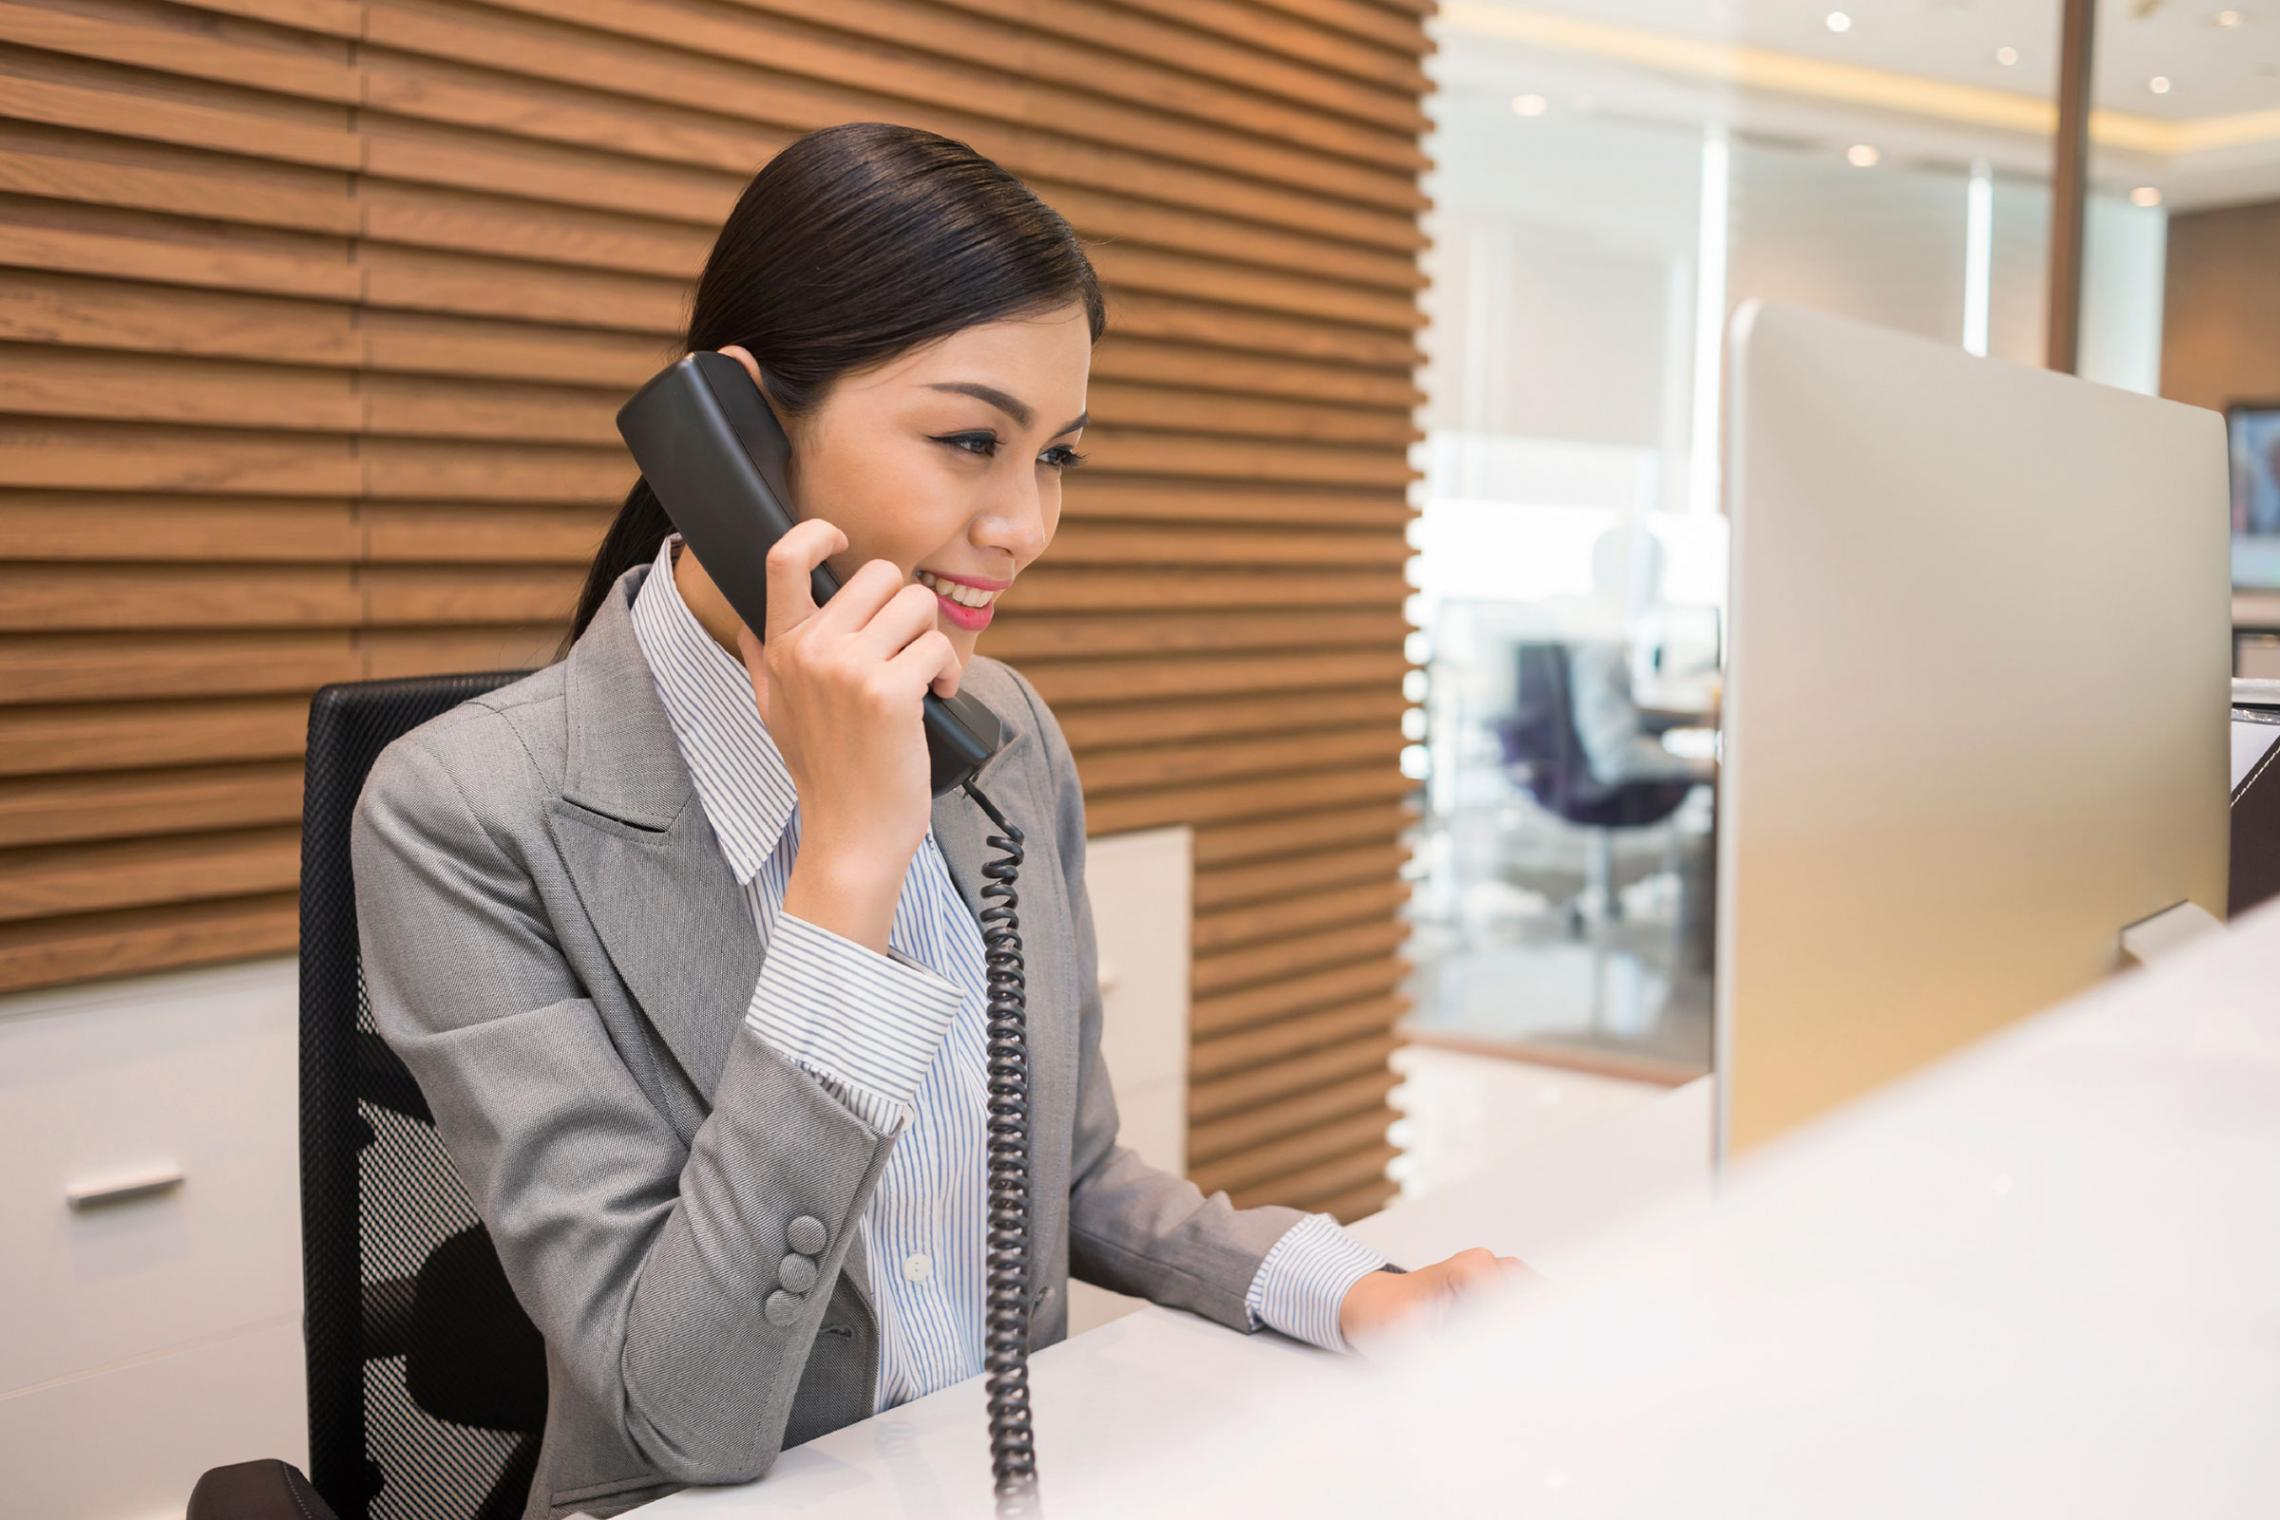 Working As A Hotel Receptionist In Korea - Hiexpat Korea